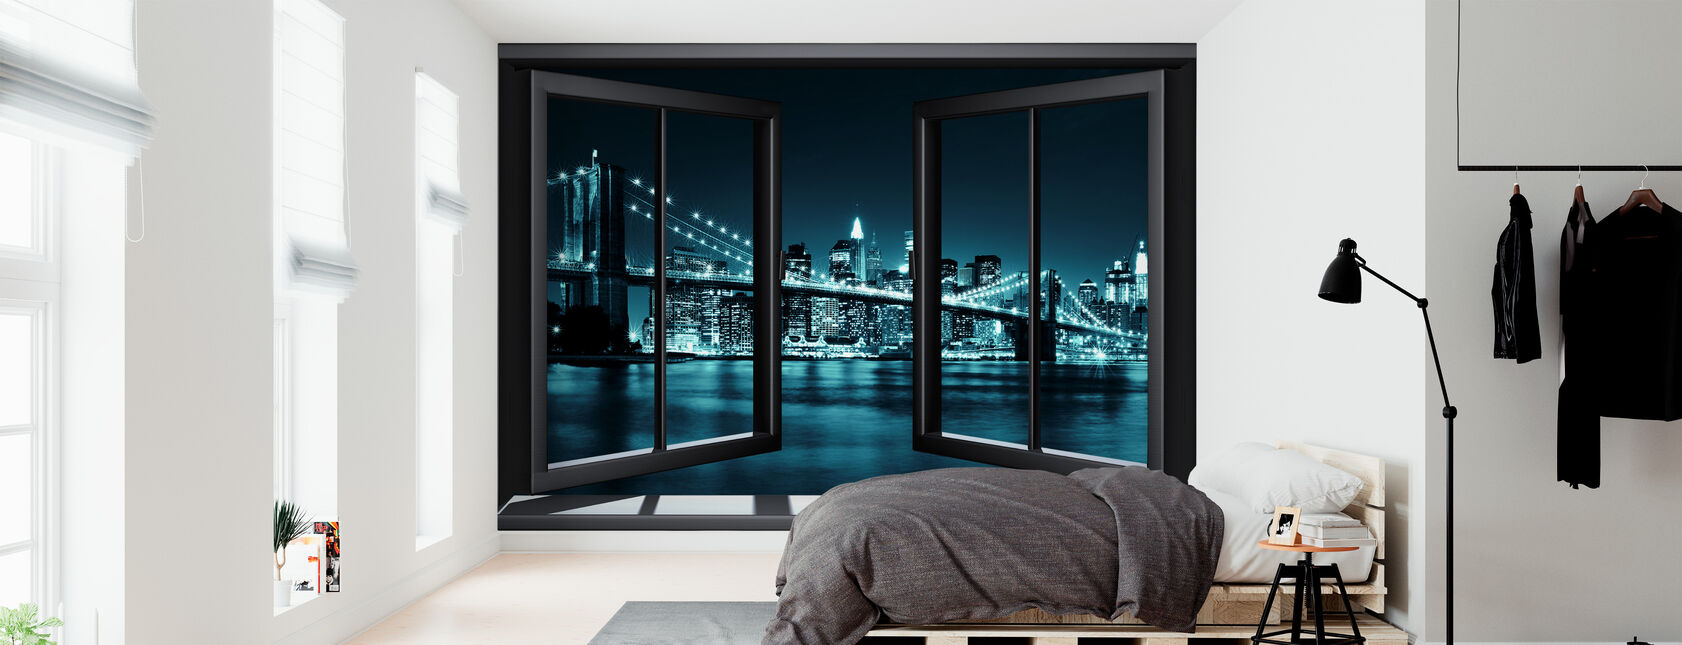 Blue Brooklyn Bridge Through Window - Wallpaper - Bedroom